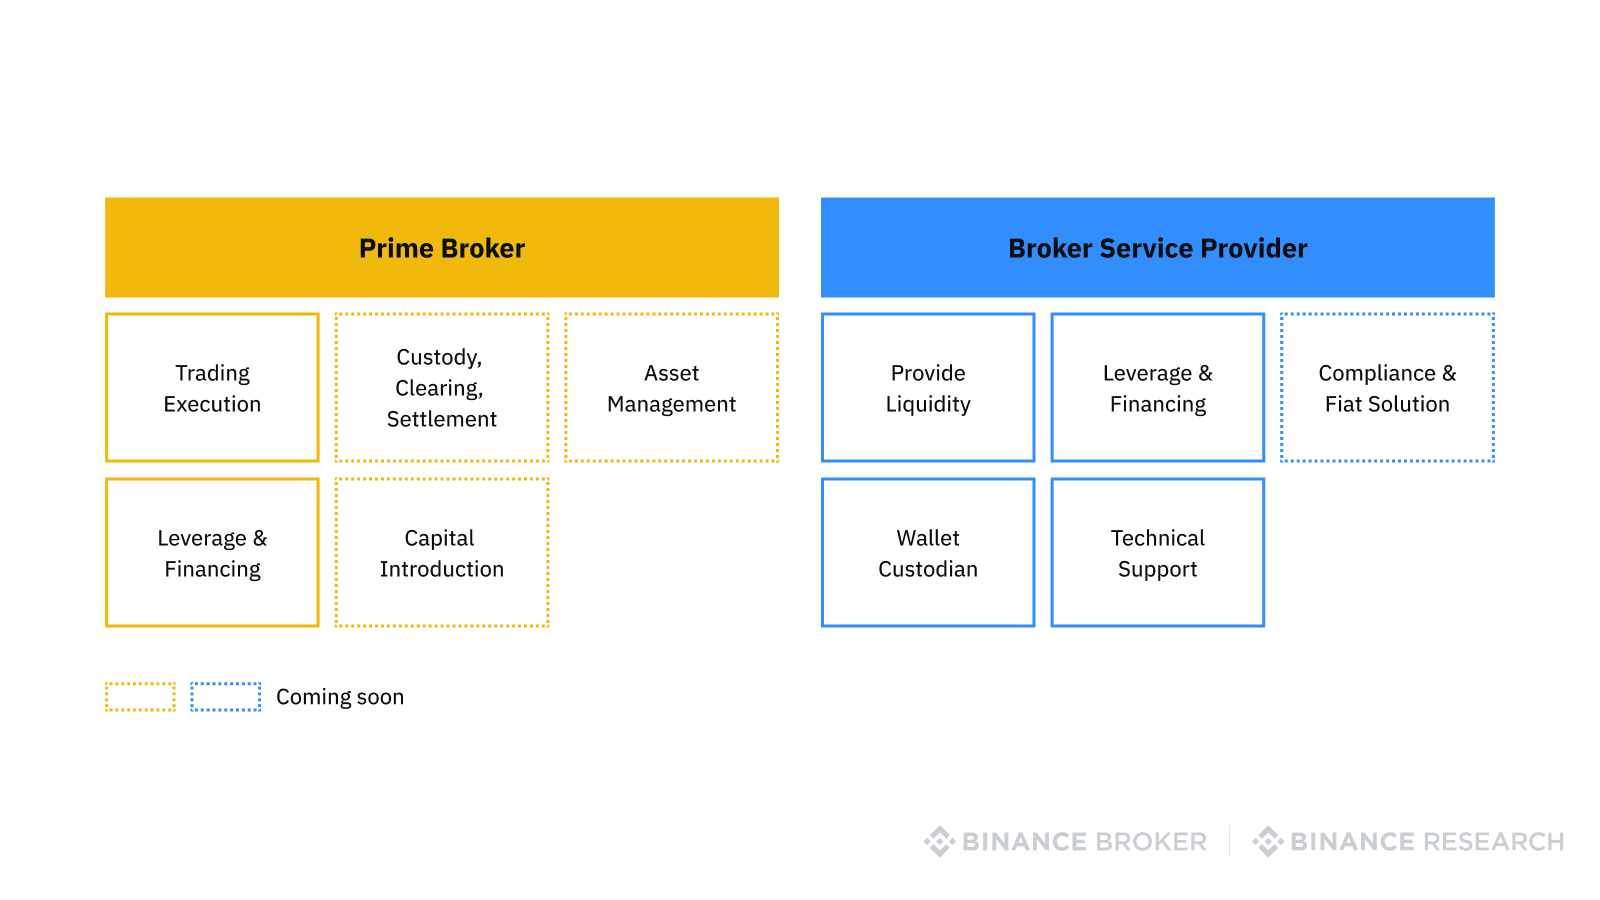 Functions of prime brokers annd broker service providers